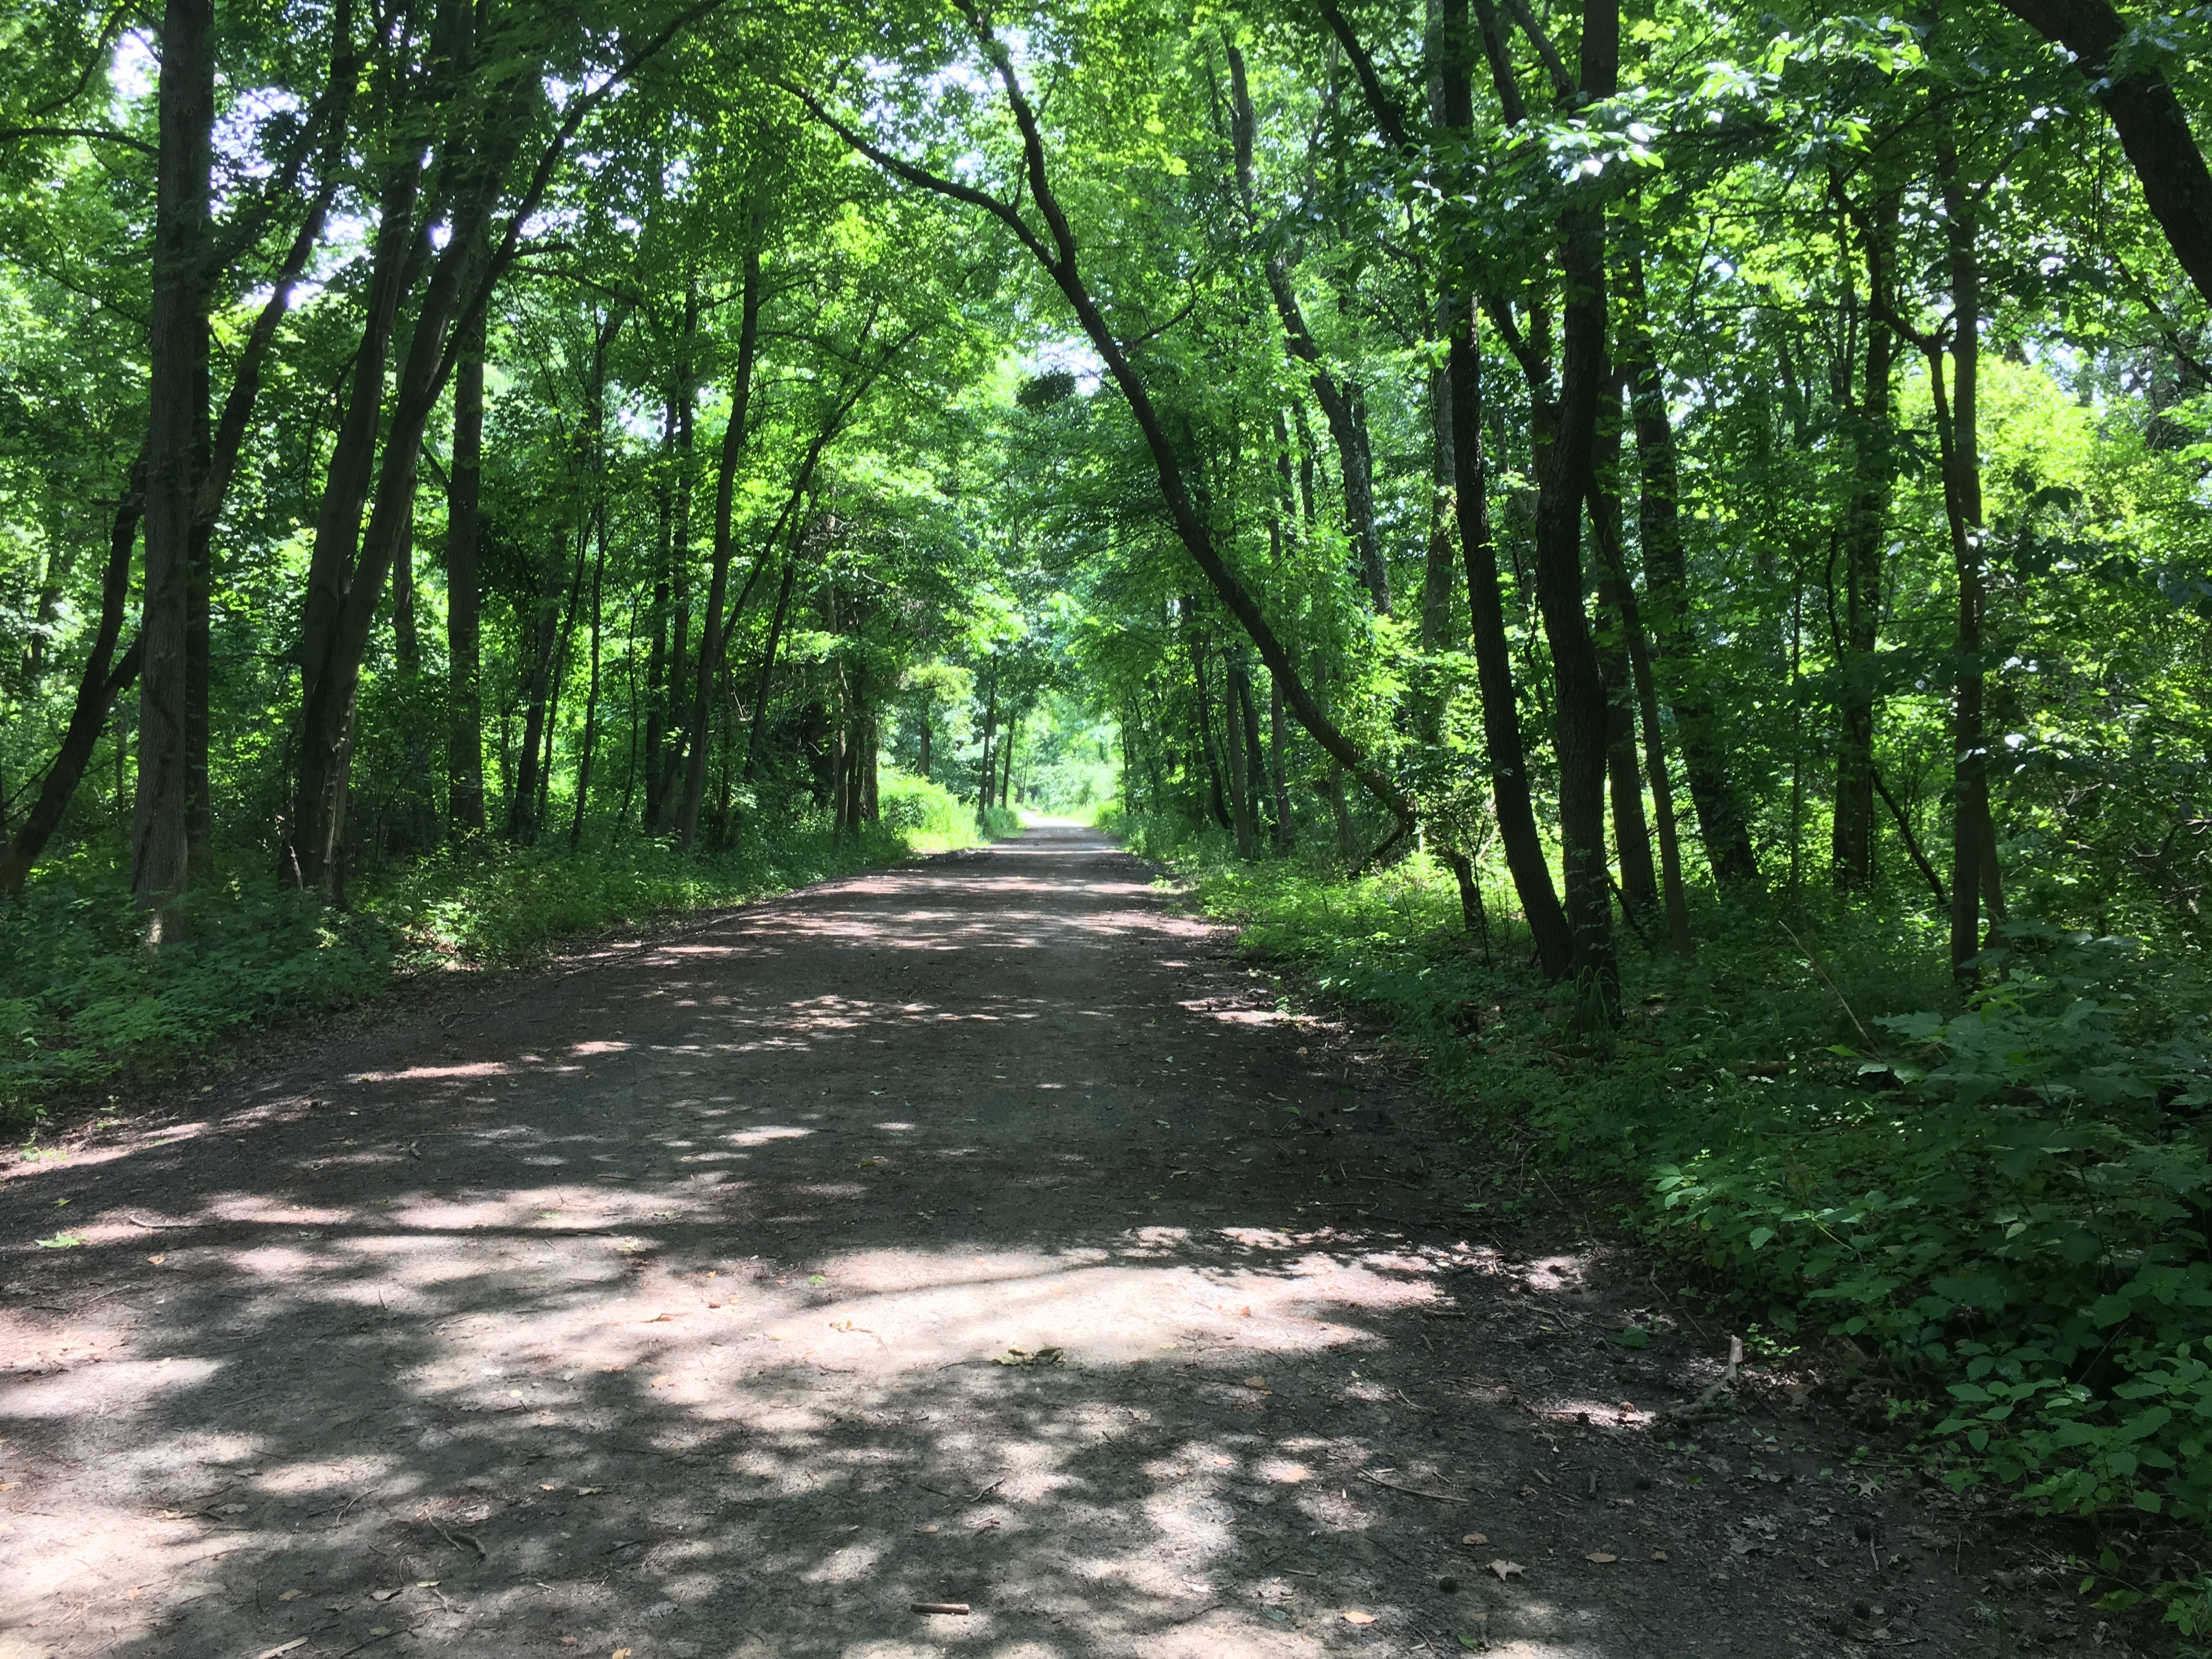 Wide trail with trees on both sides